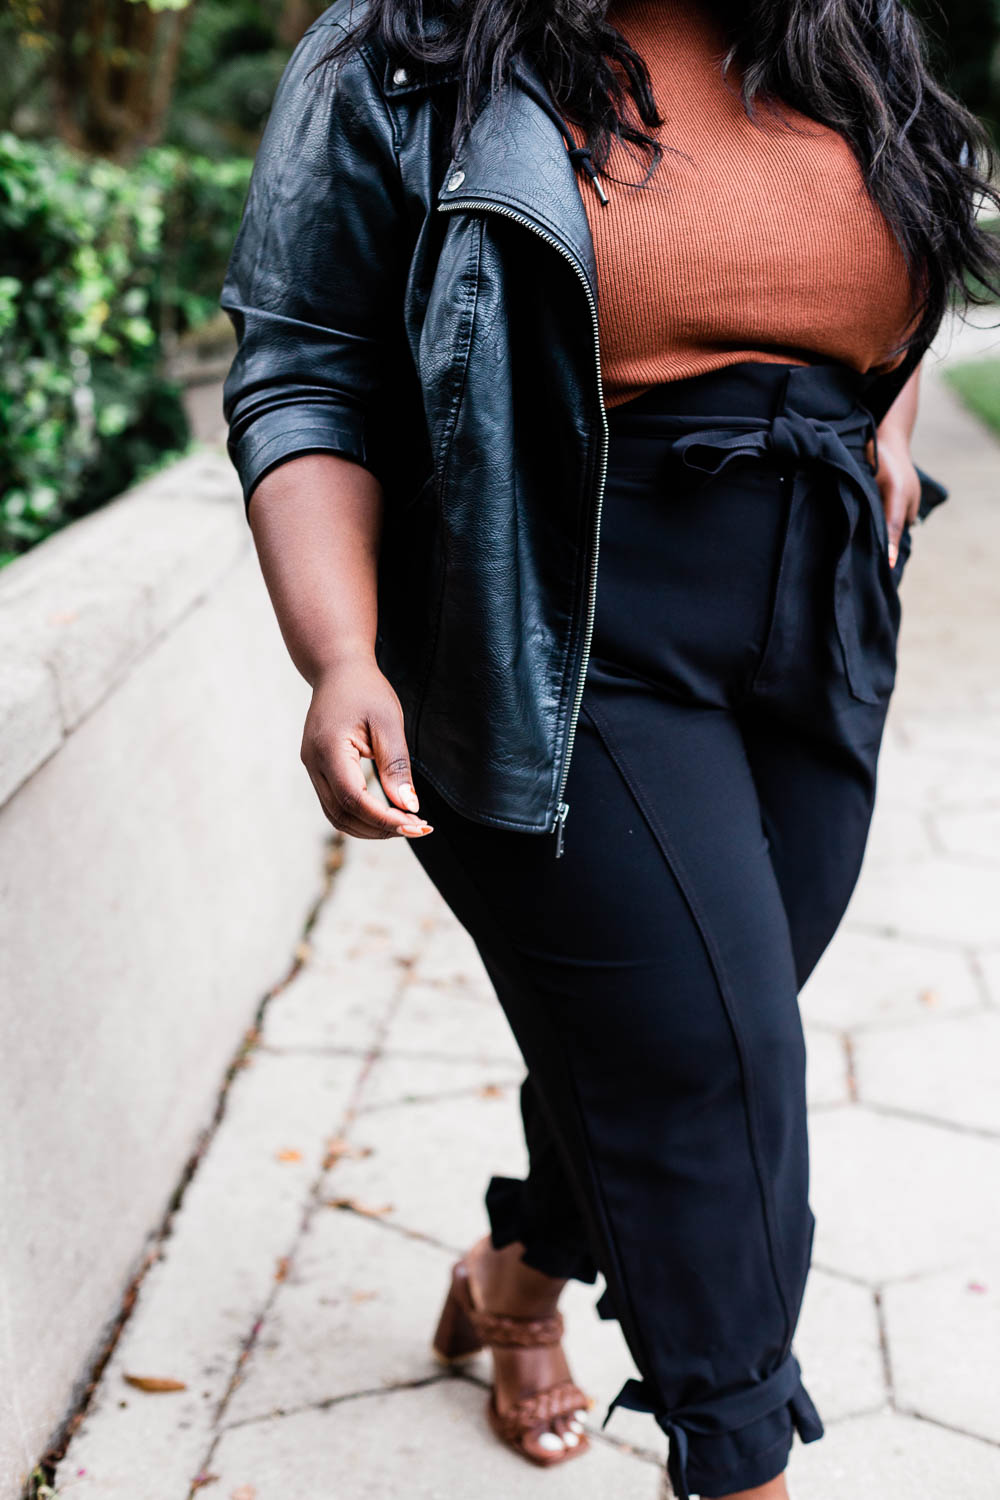 THAMARR, MUSINGS OF A CURVY LADY, JCPENNEY, LEVI'S, MOTO JACKET, PLUS SIZE MOTO, FALL FASHION, PLUS SIZE FALL OUTFIT